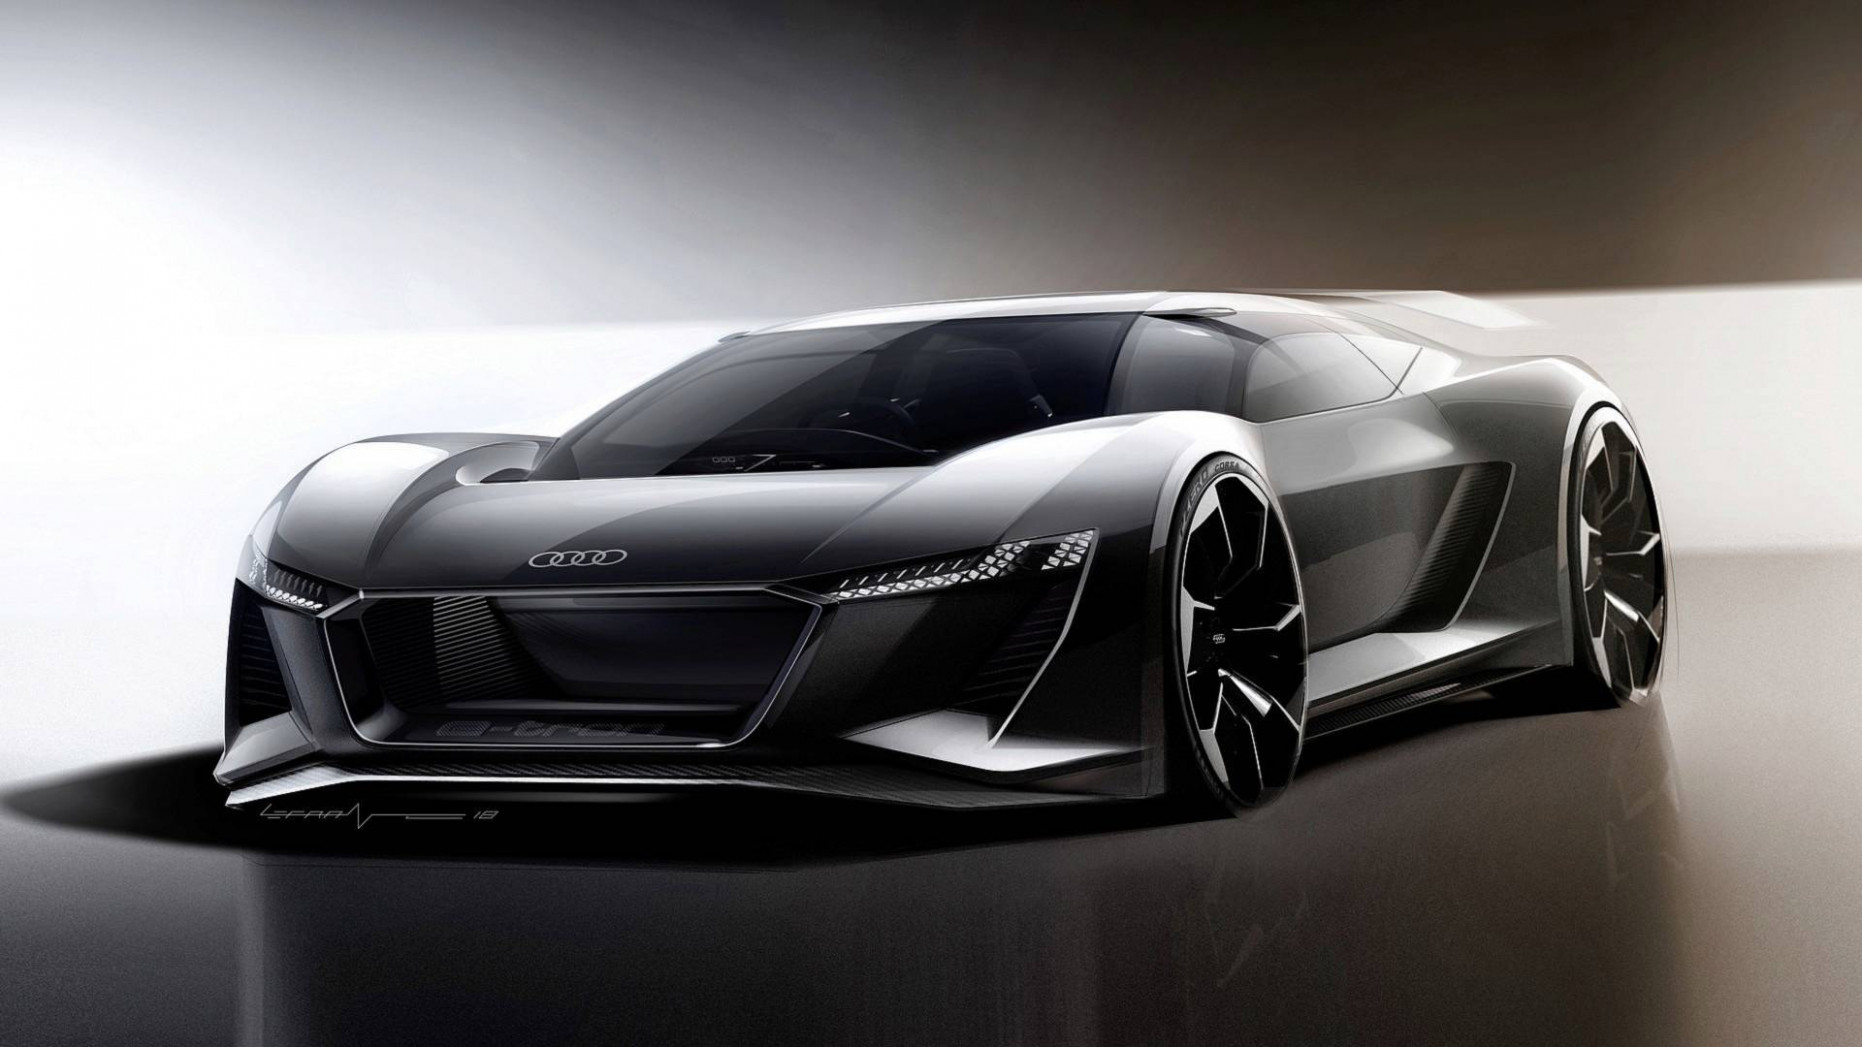 New Model and Performance 2022 Audi R8